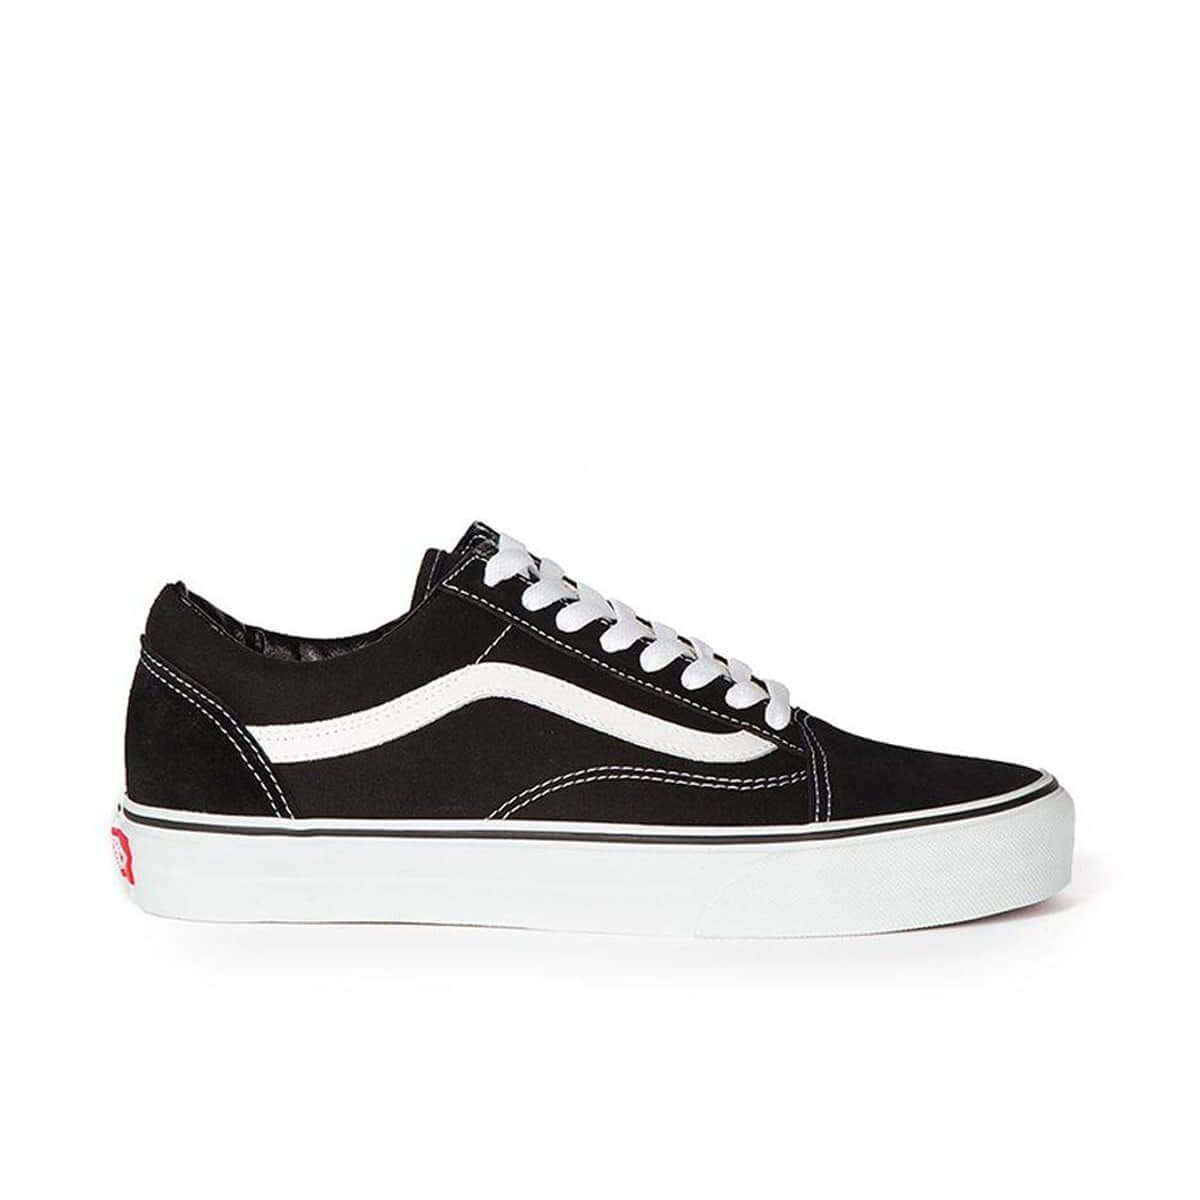 van kids old skool black side